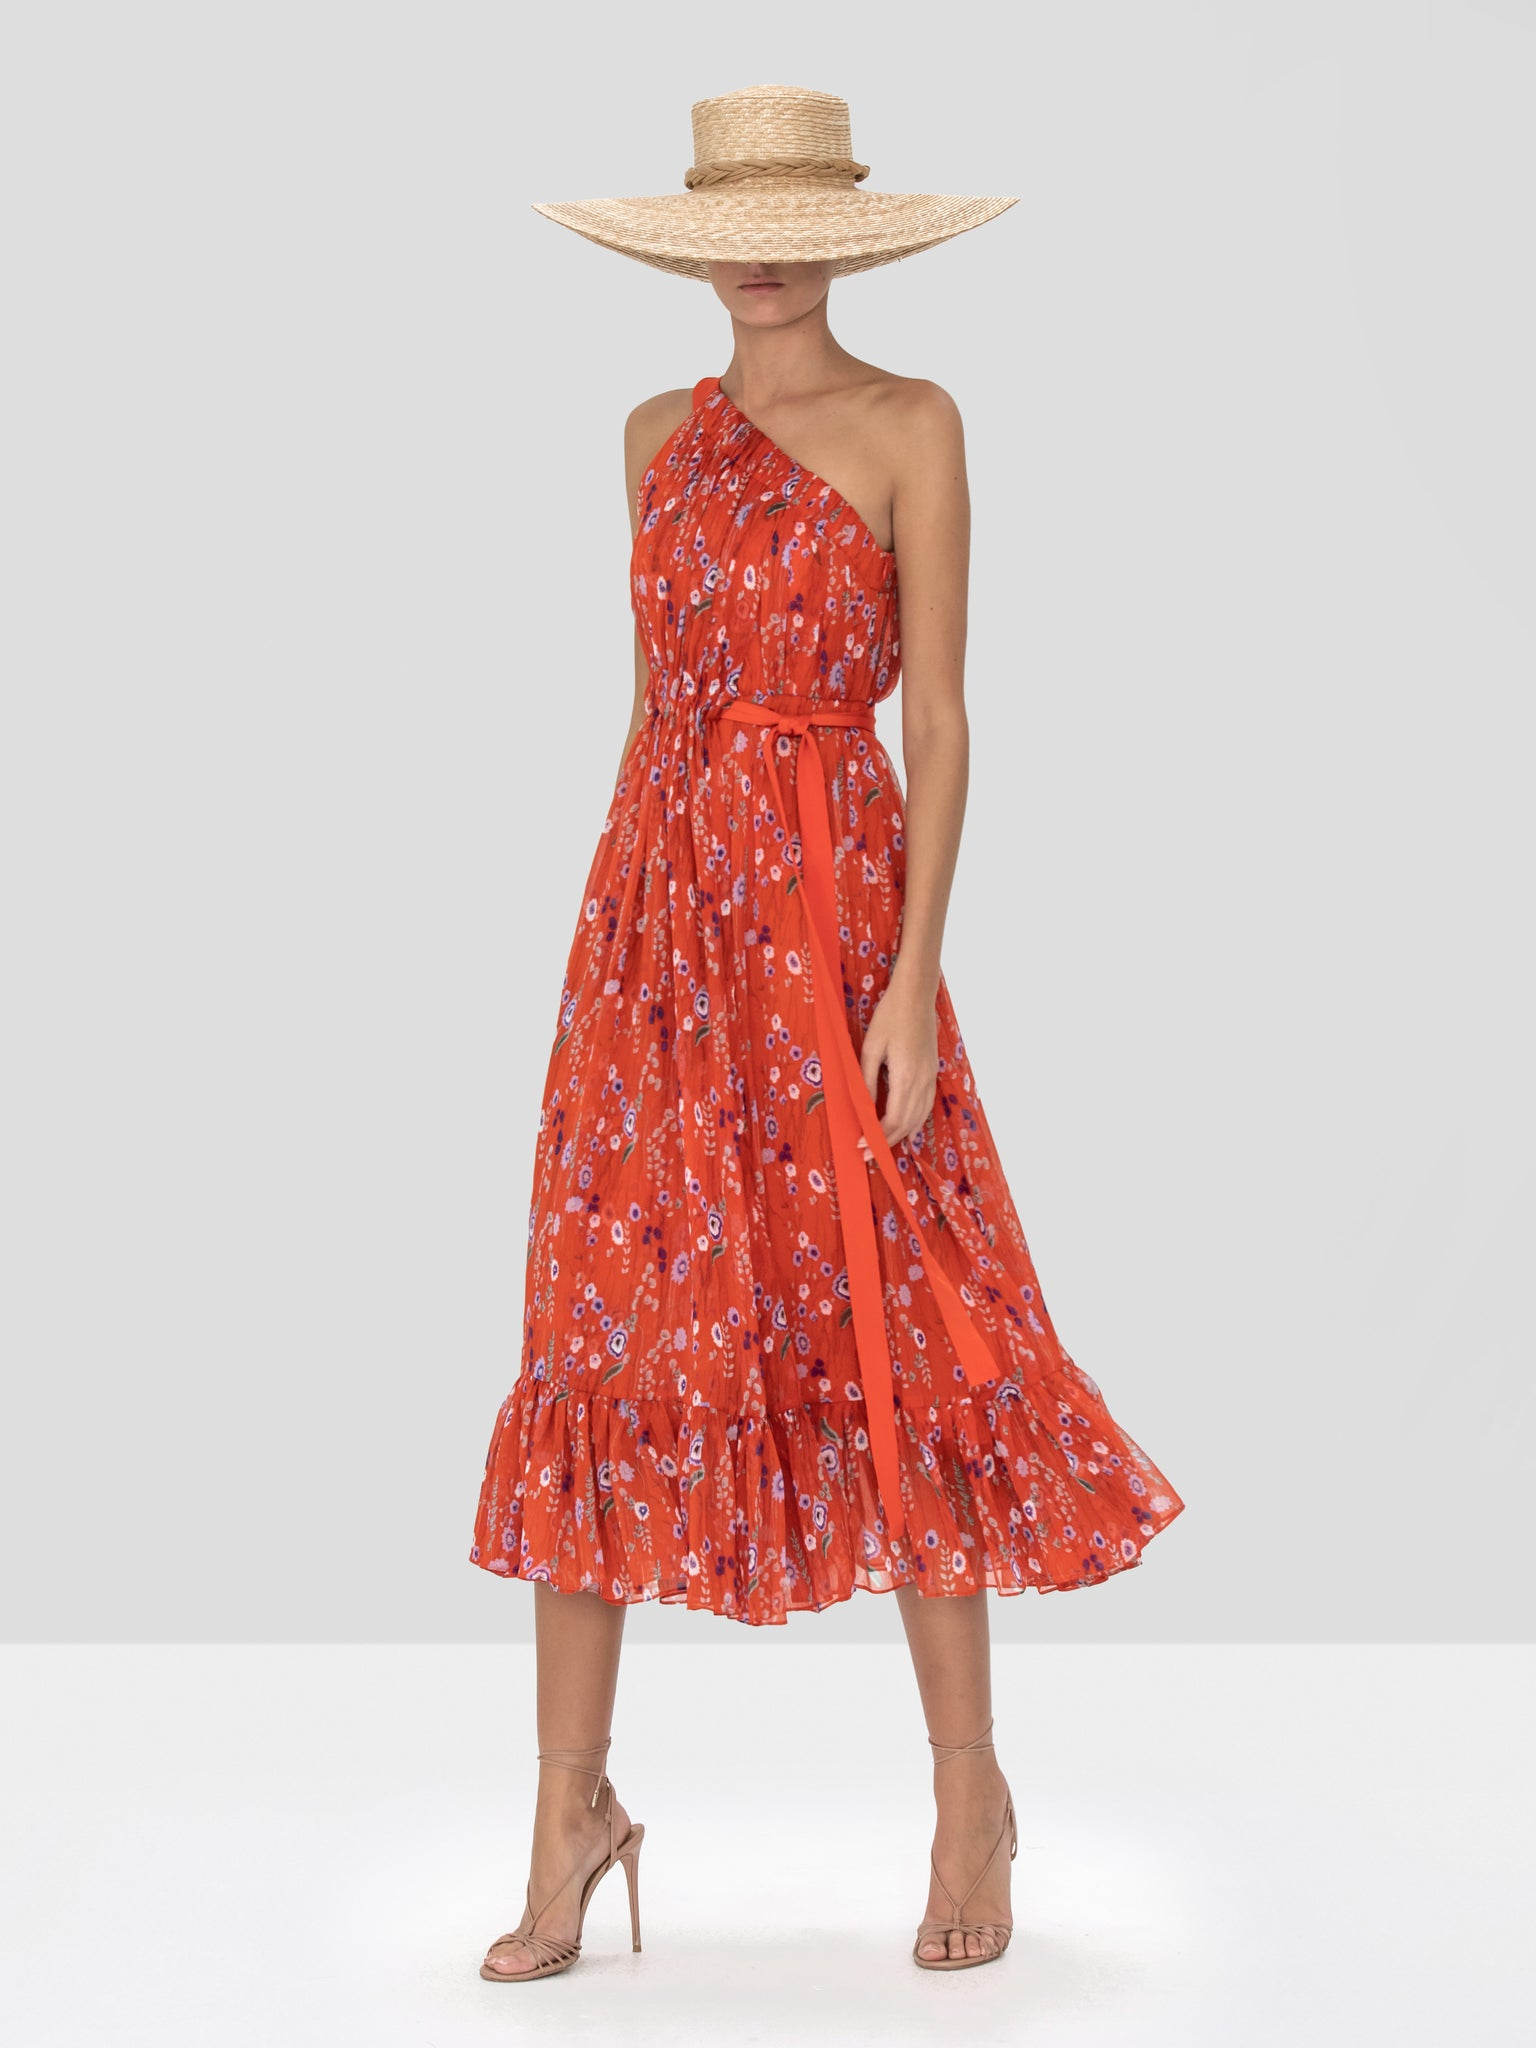 Alexis Teodora Dress in Red Bouquet from the Spring Summer 2020 - Rear View